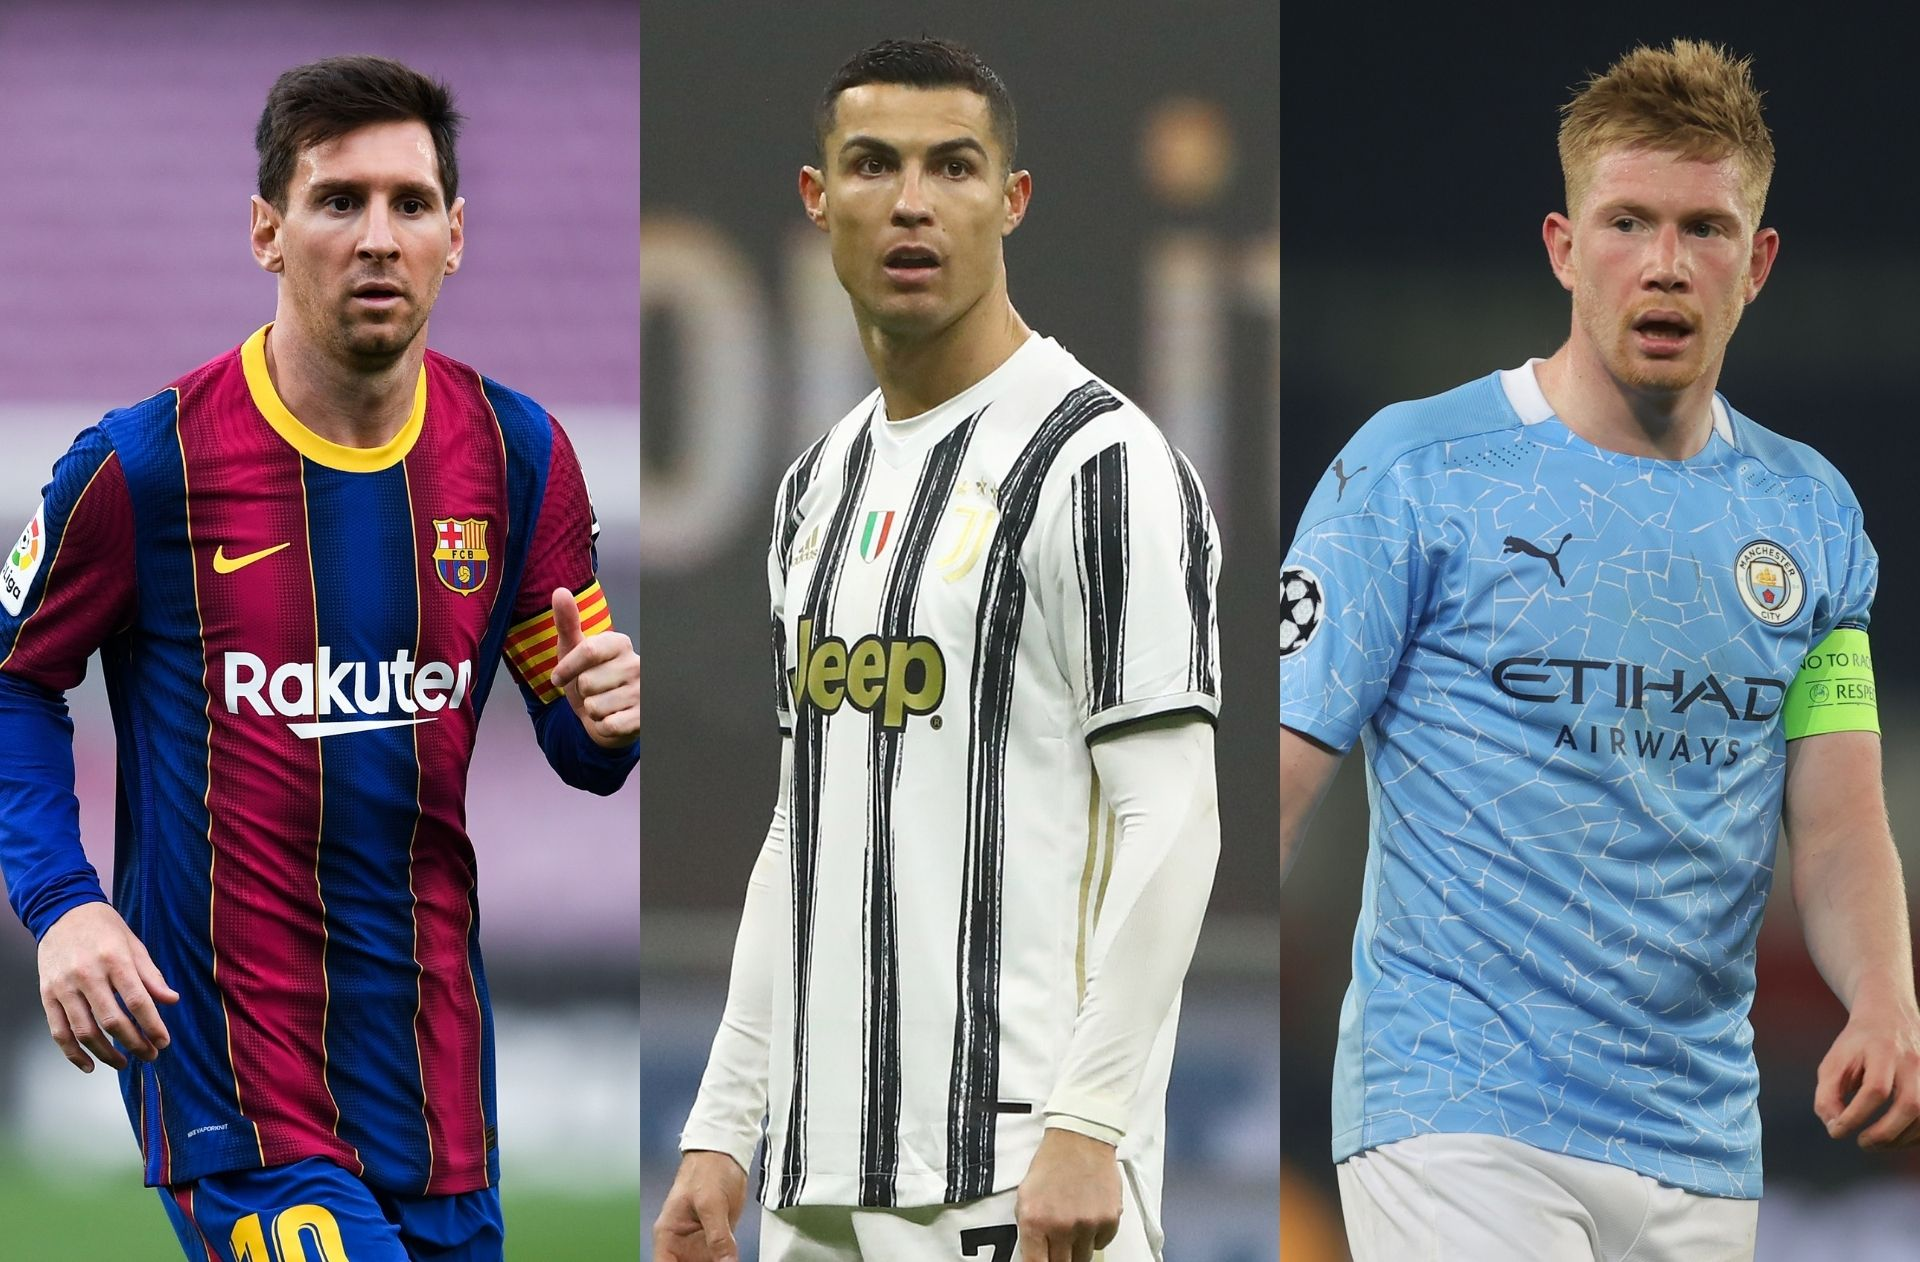 The 30 most valuable football clubs in the world revealed